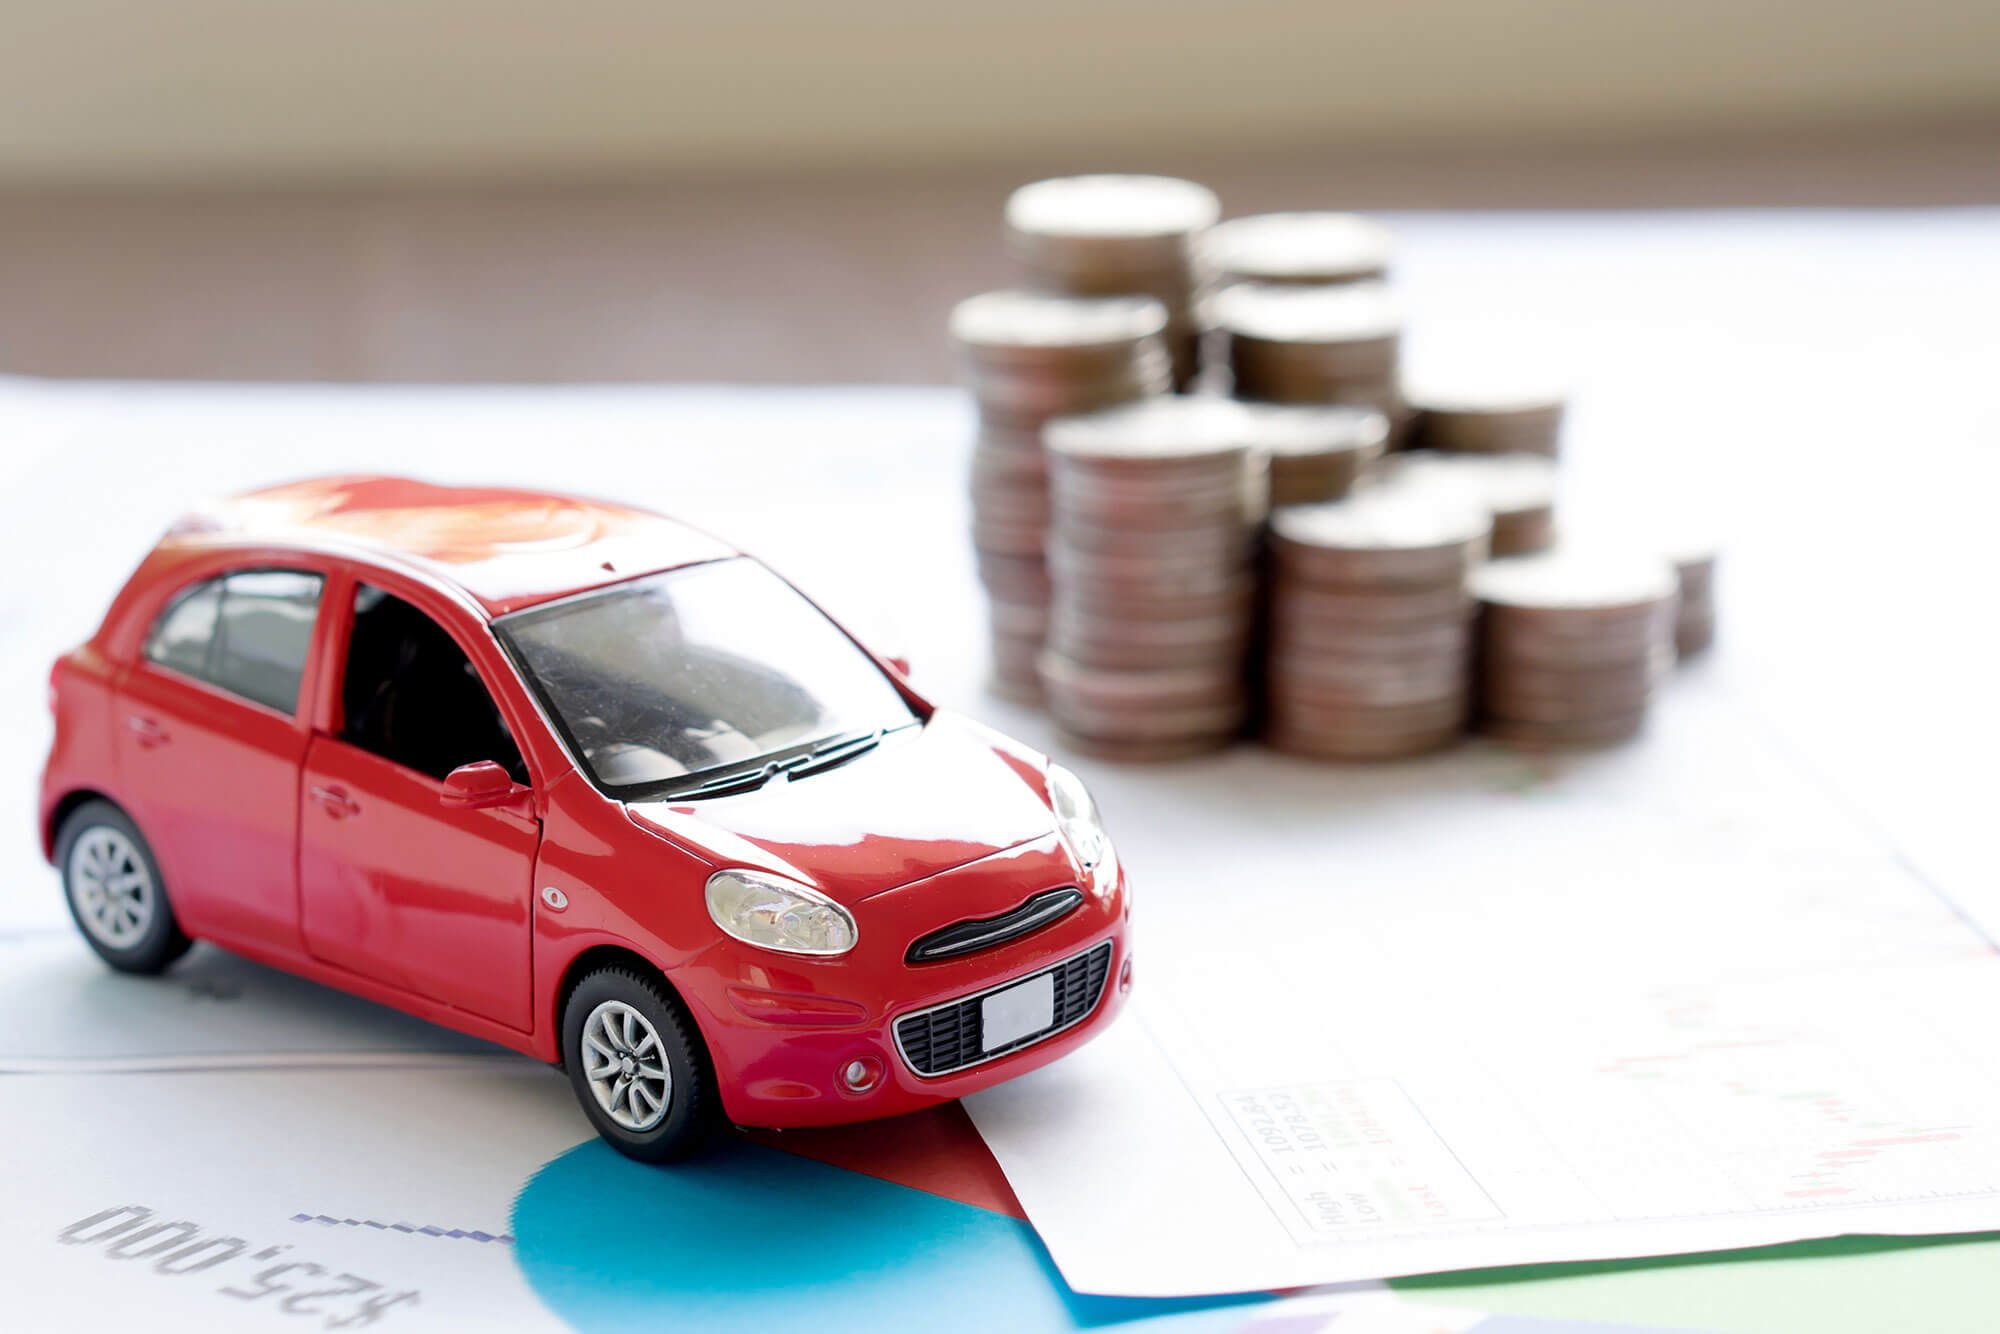 Cheap Car Insurance 2020 - Lowcostcarsinsurance.us Presents Top Ways to Get Better Car Insurance Rates